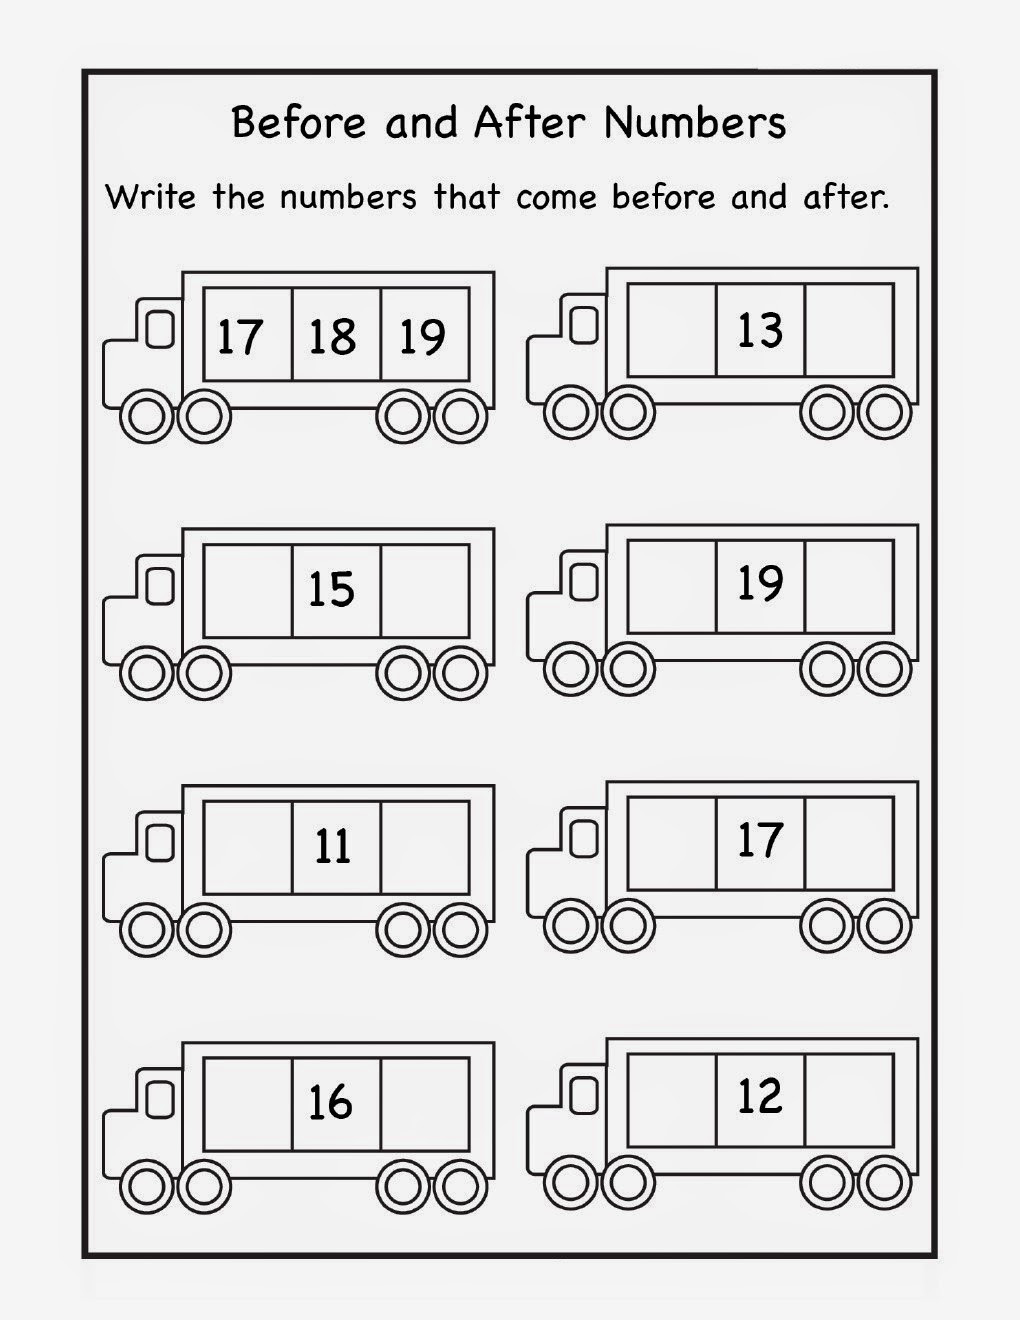 Numbers before and after Worksheet